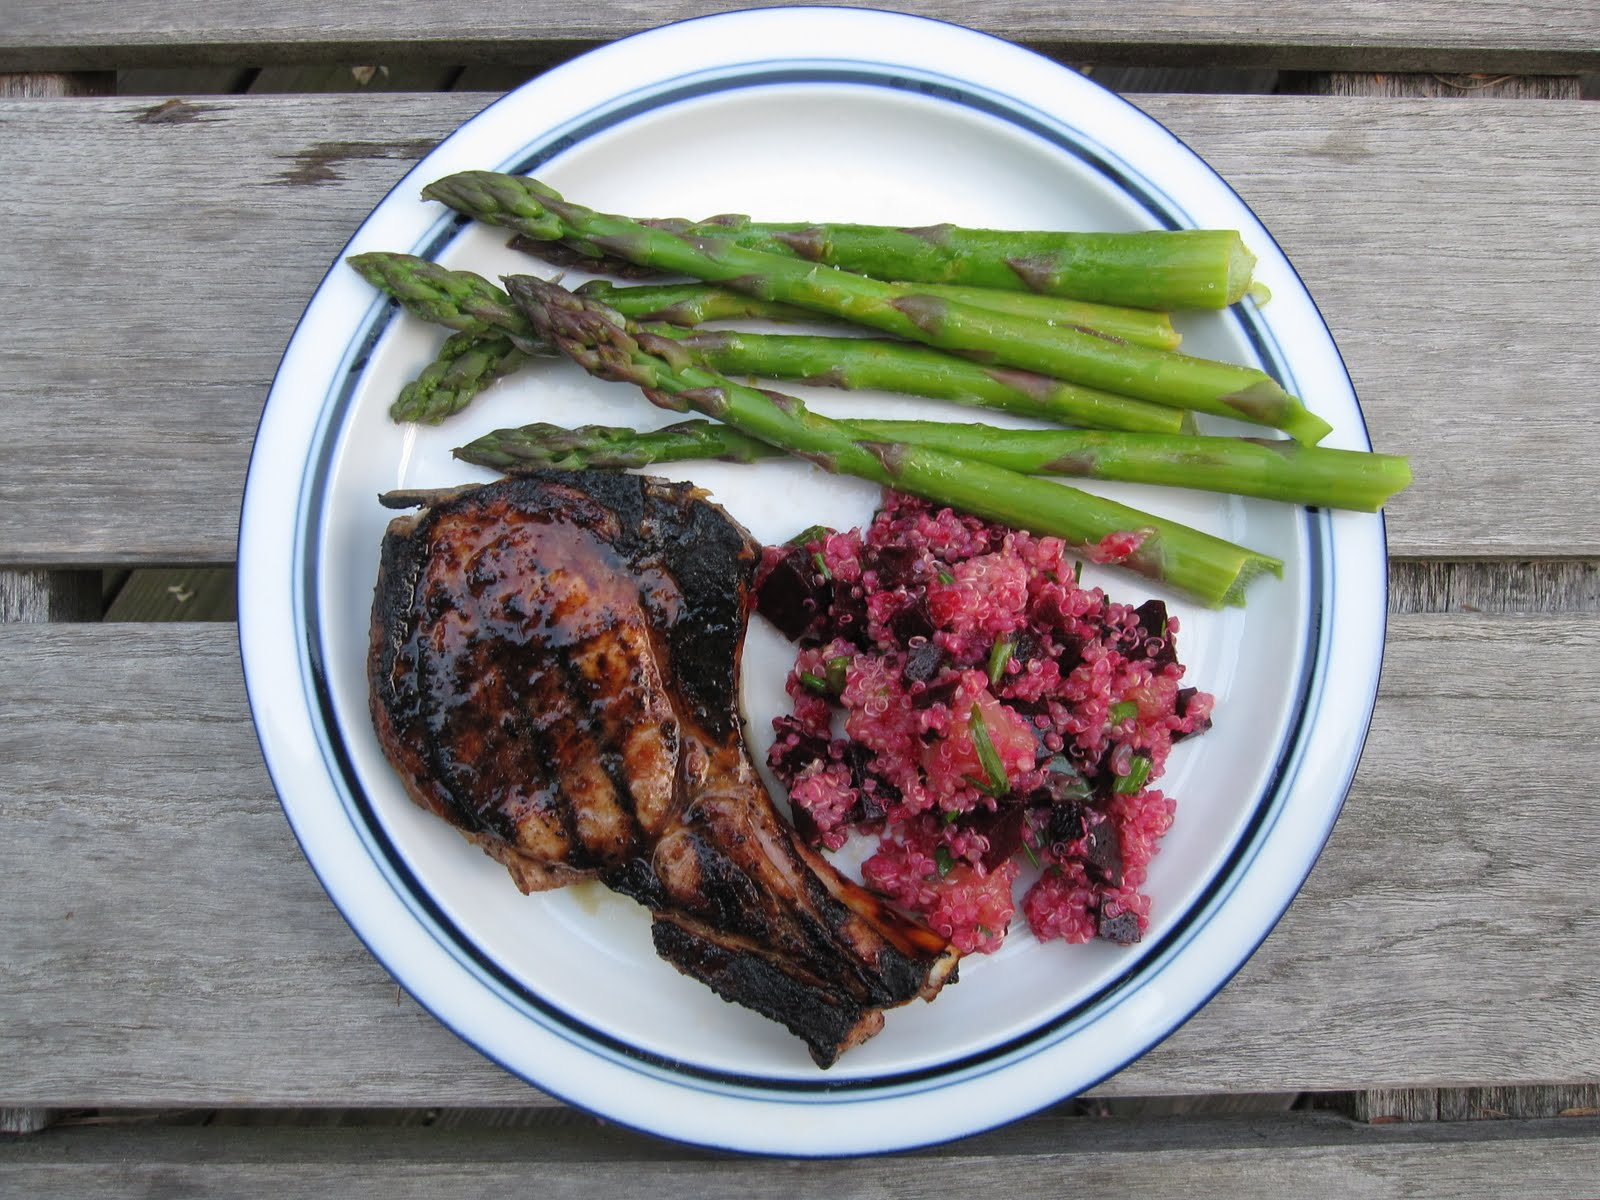 pork chops asparagus beets quinoa grapefruit